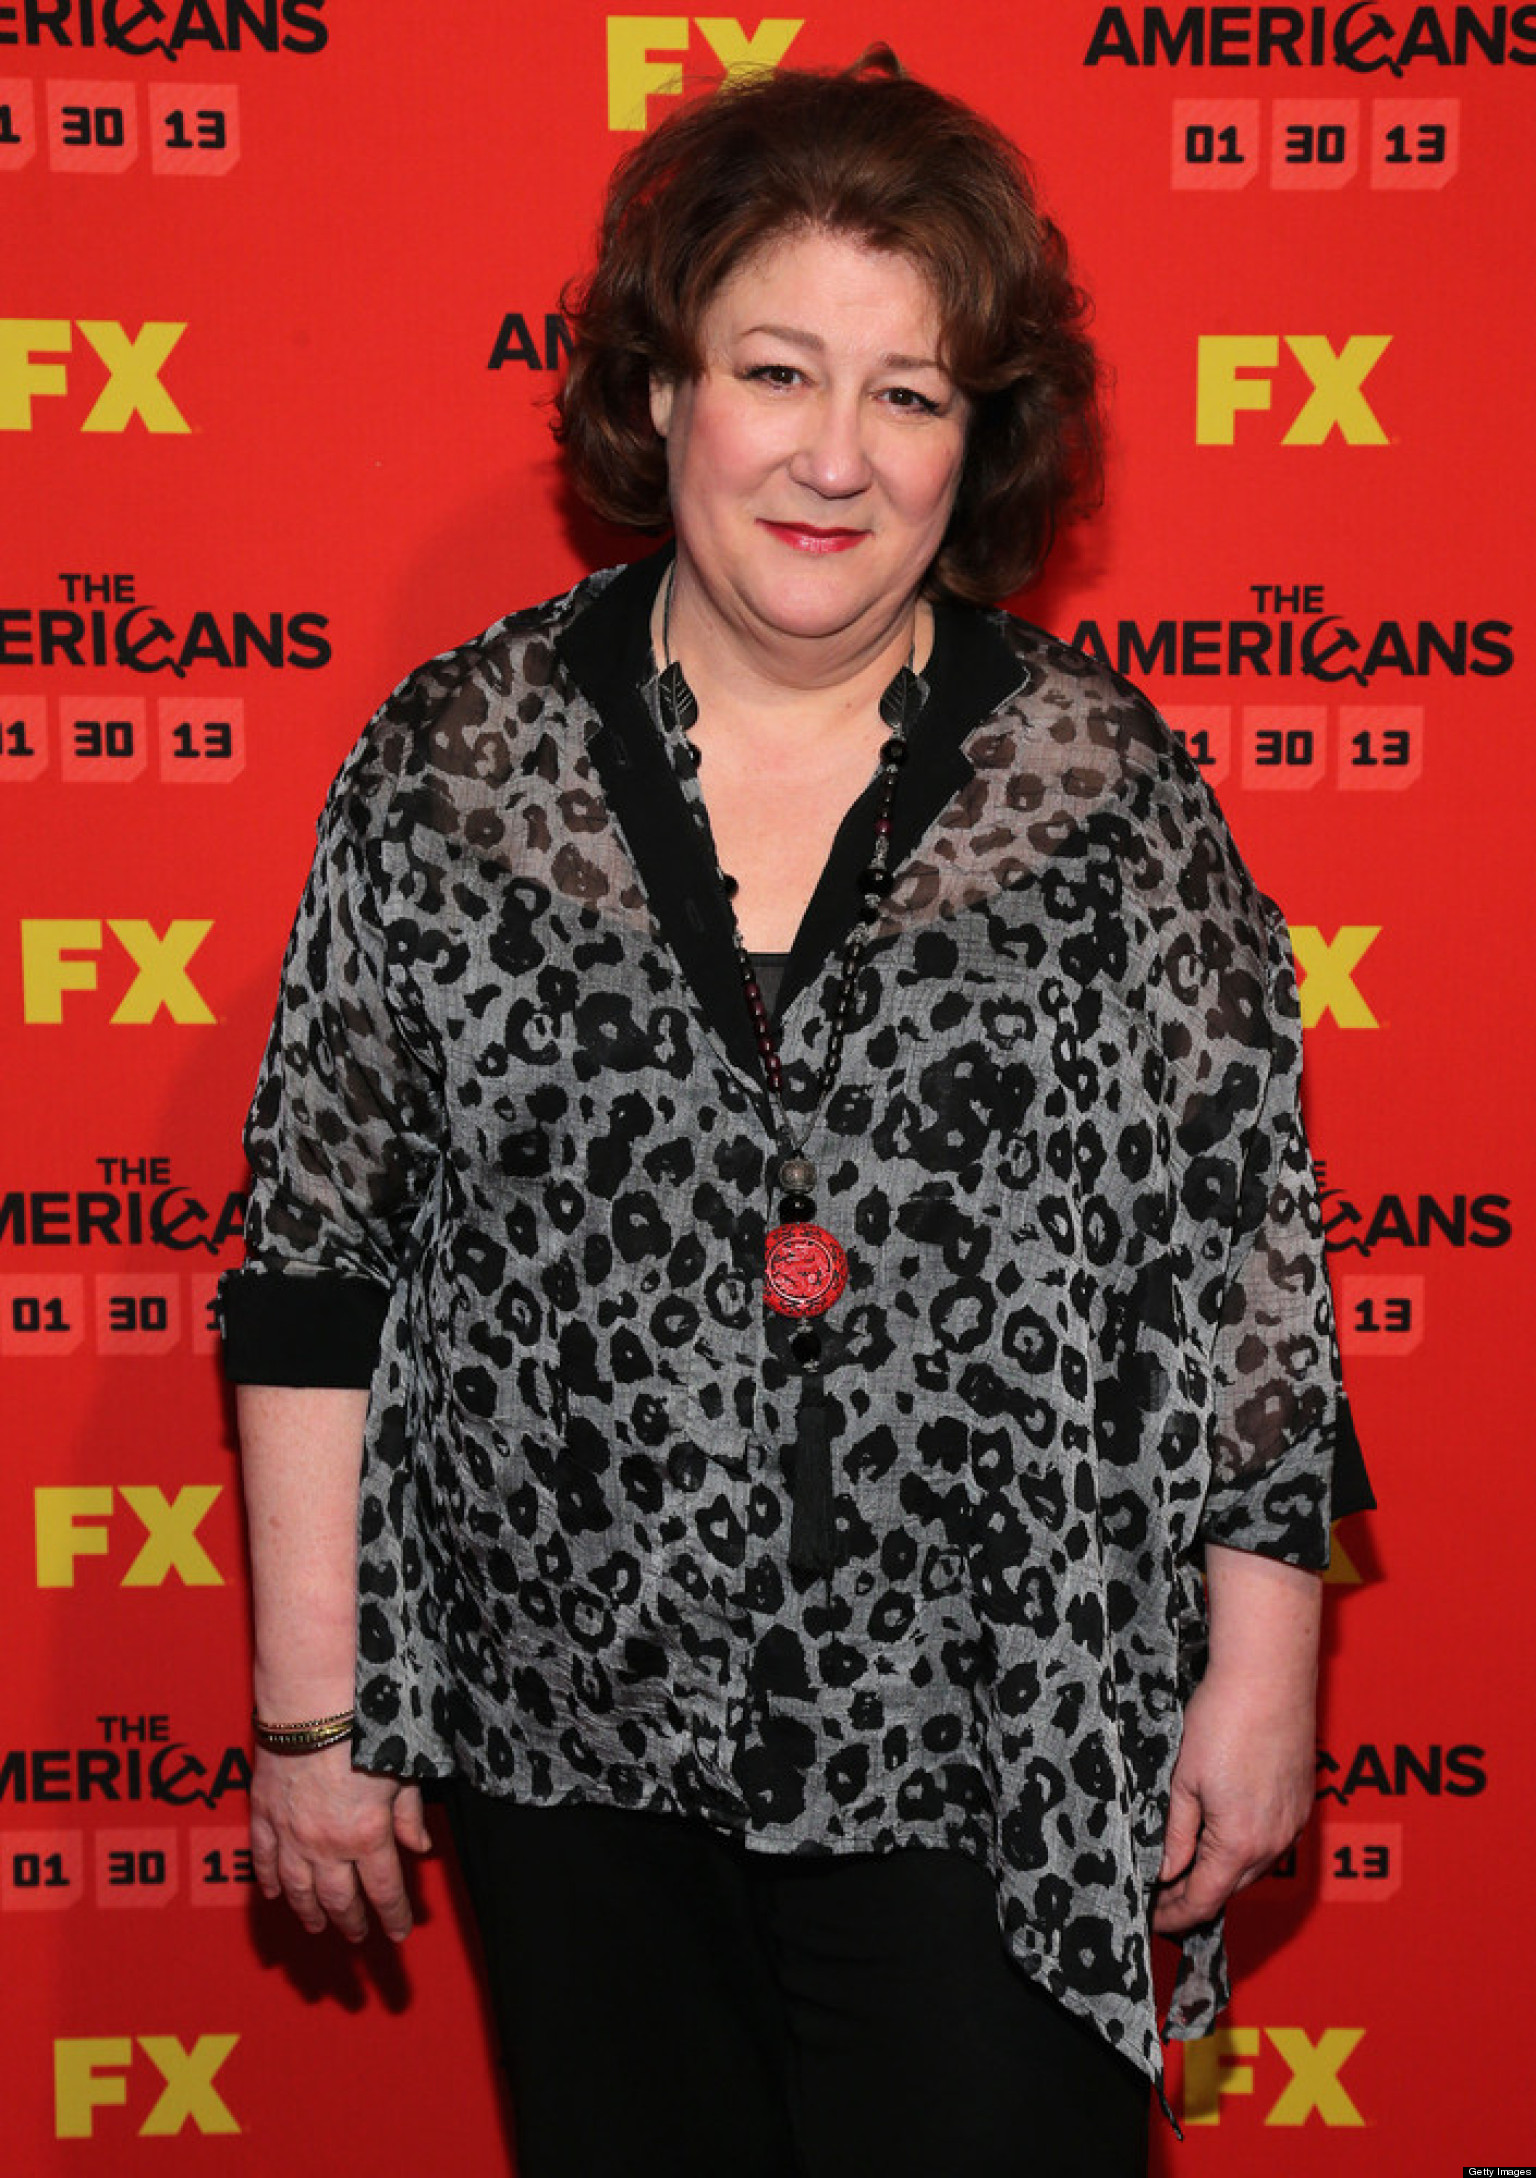 margo martindale young picturesmargo martindale bojack horseman, margo martindale emmy, margo martindale twitter, margo martindale justified, margo martindale wiki, margo martindale bojack, margo martindale young, margo martindale paris, margo martindale paris je t'aime, margo martindale, margo martindale imdb, margo martindale net worth, margo martindale wins emmy, margo martindale dexter, margo martindale biography, margo martindale the good wife, margo martindale the leftovers, margo martindale feet, margo martindale husband, margo martindale young pictures